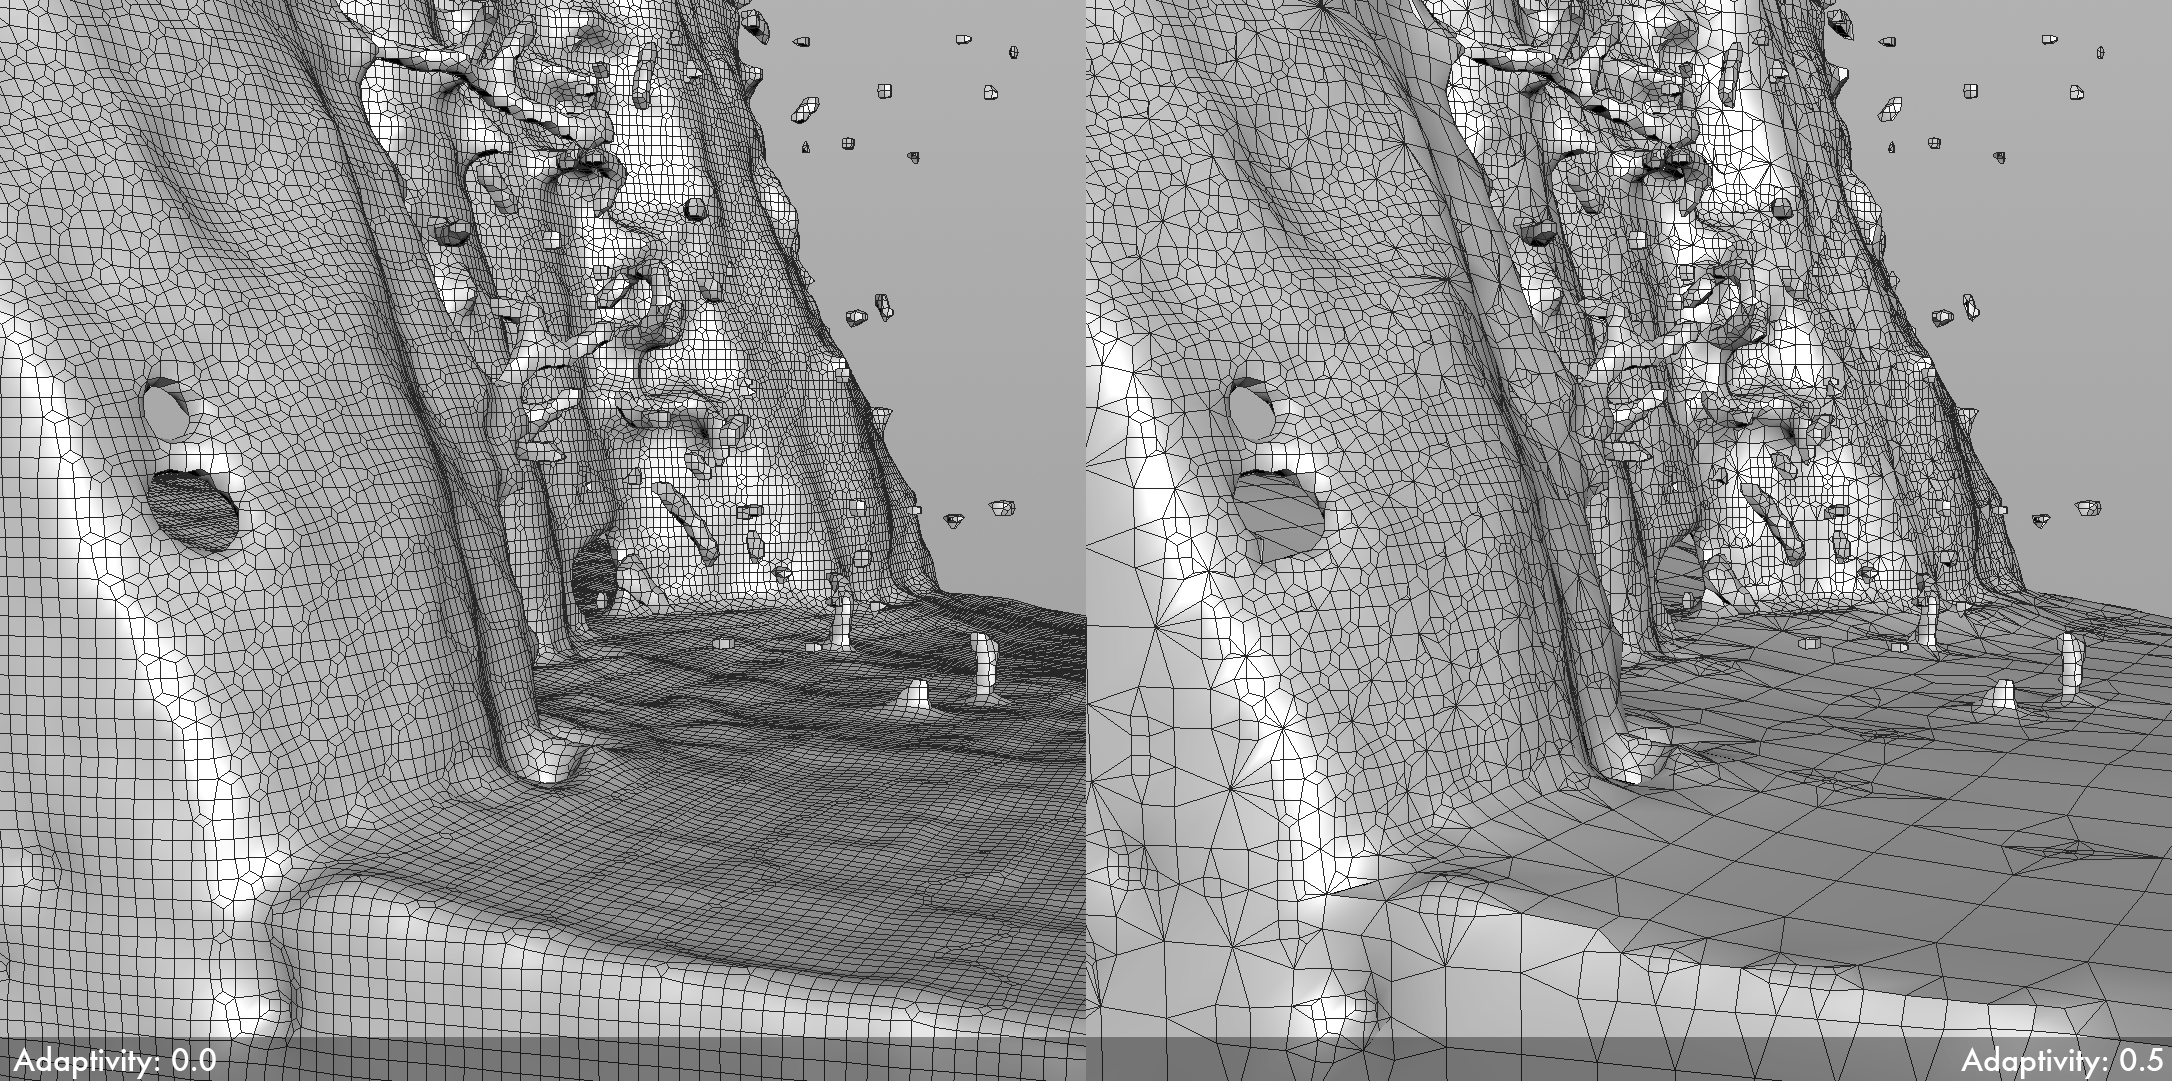 Zero adaptive meshing (on the left) versus adaptive meshing with 0.5 adaptivity (on the right). Note the significantly lower poly count in the adaptive meshing, but also the corresponding loss of detail in the mesh.